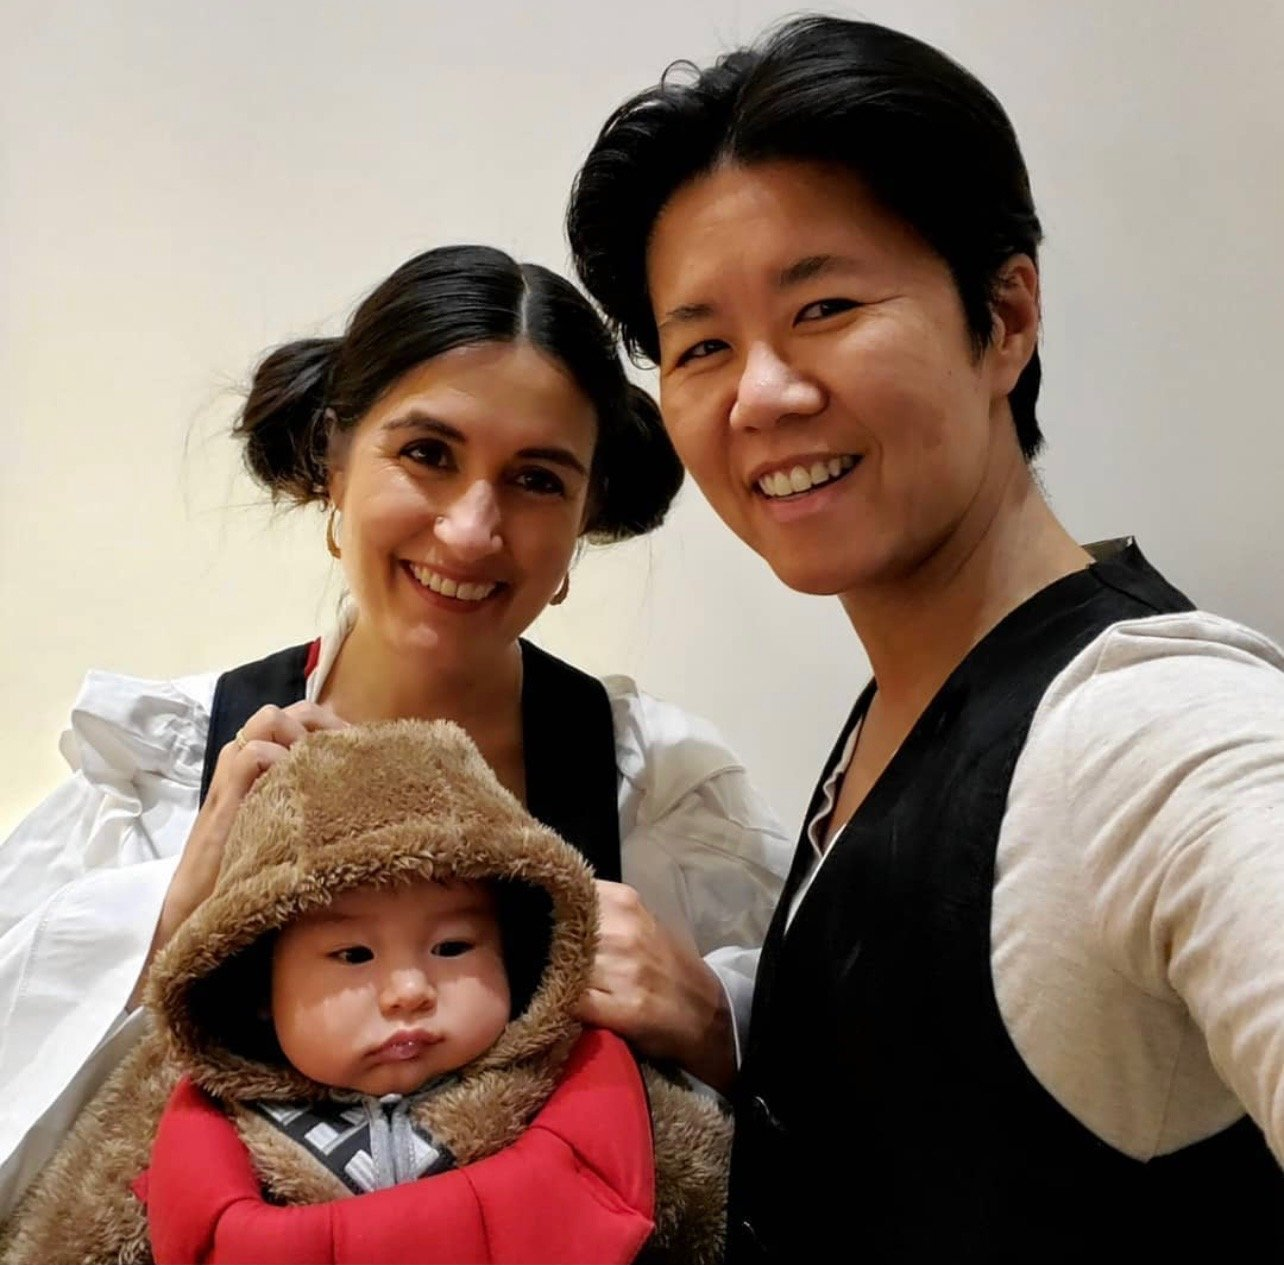 A picture of Councillor Wong-Tam's family dressed in Star Wars costumes